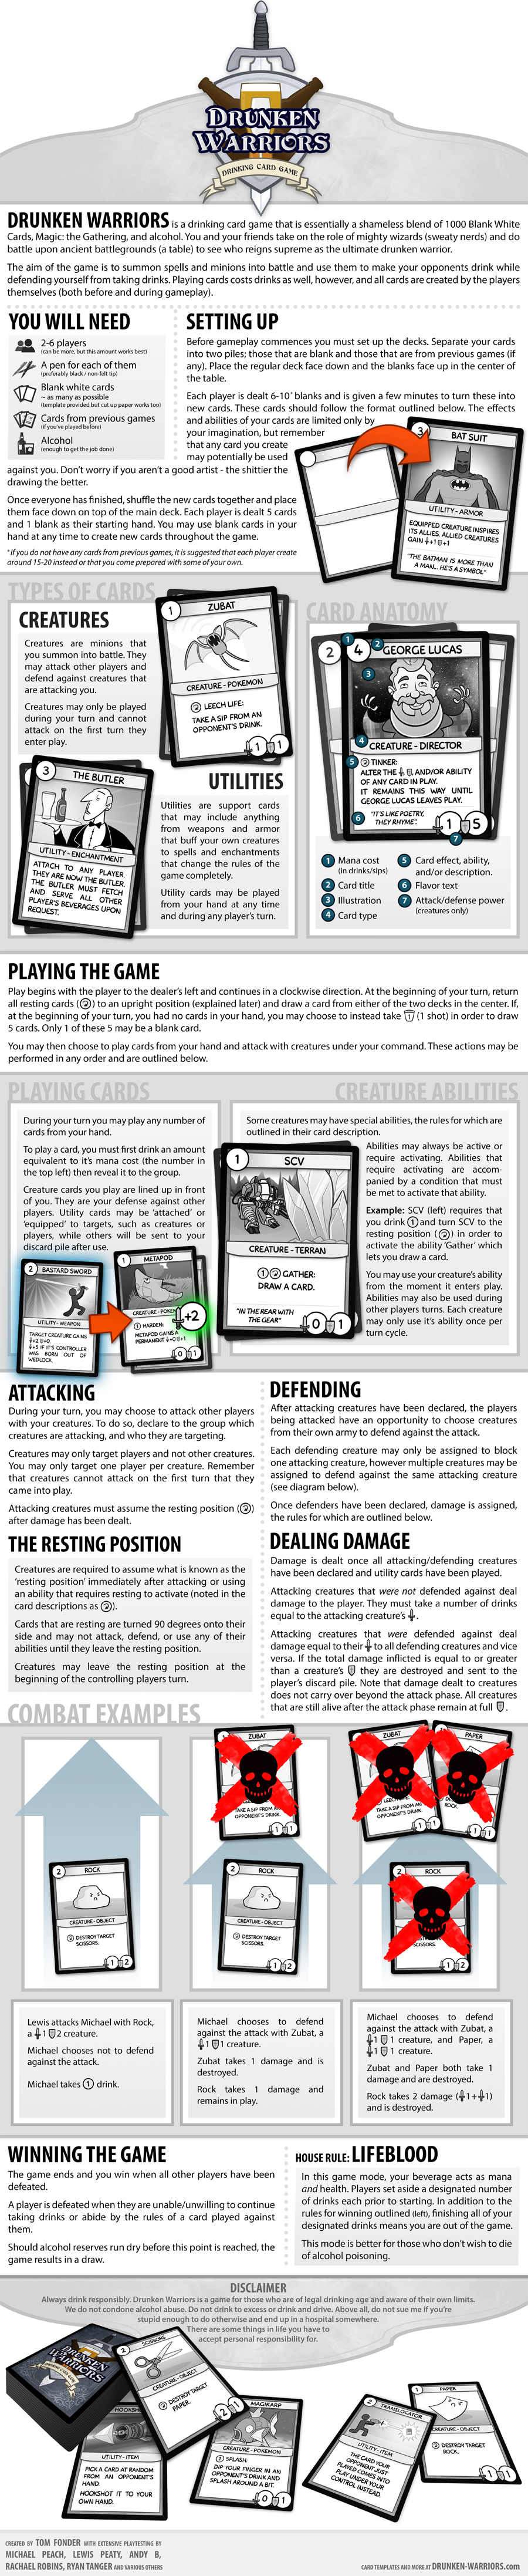 Drunken Warriors - A Drinking Card Game by tomfonder